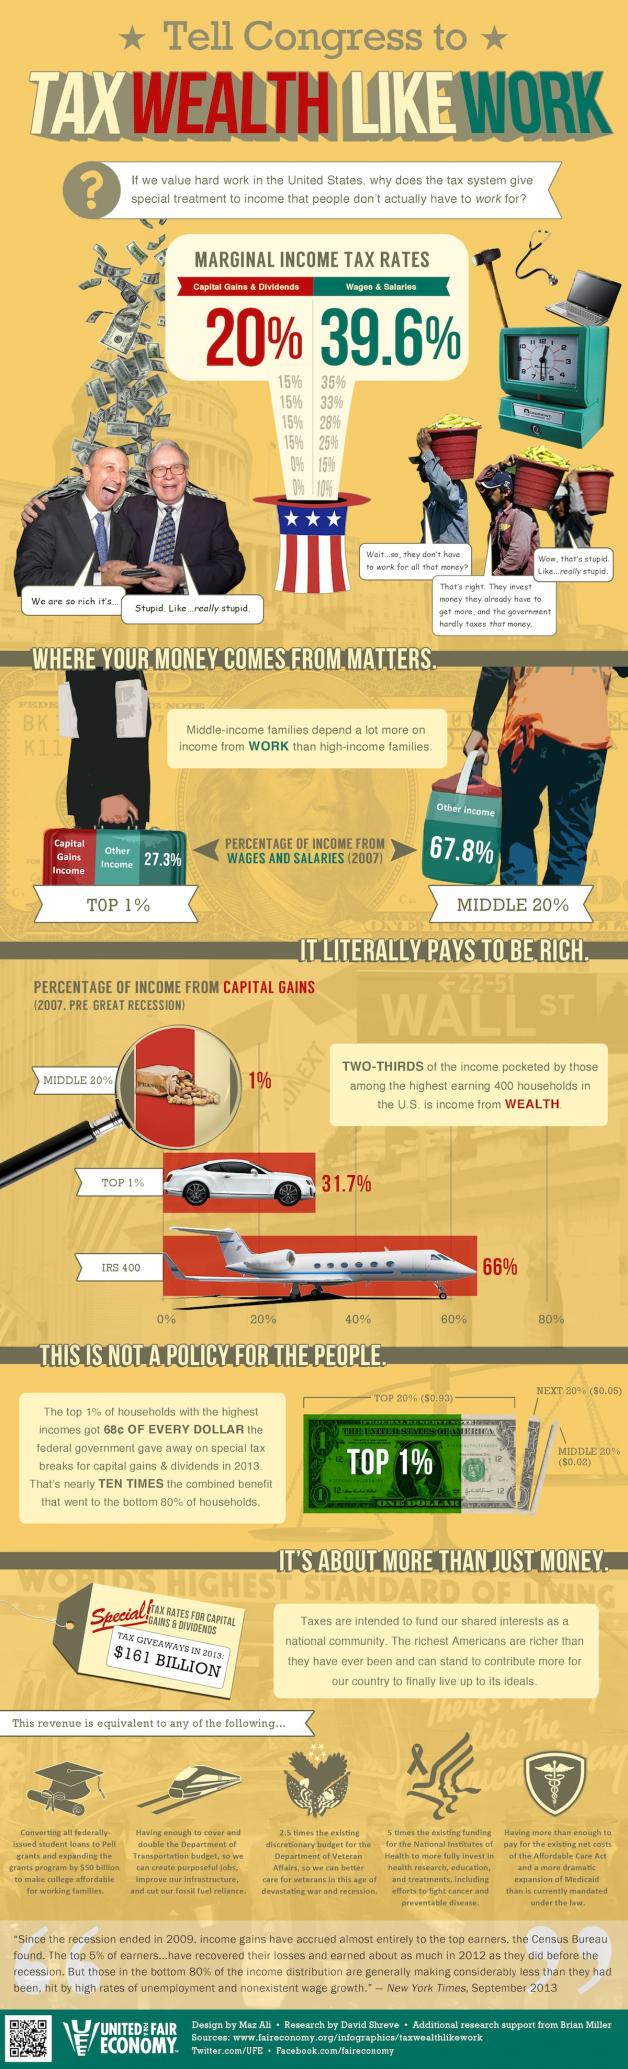 infographic-tax-wealth-like-work.jpg